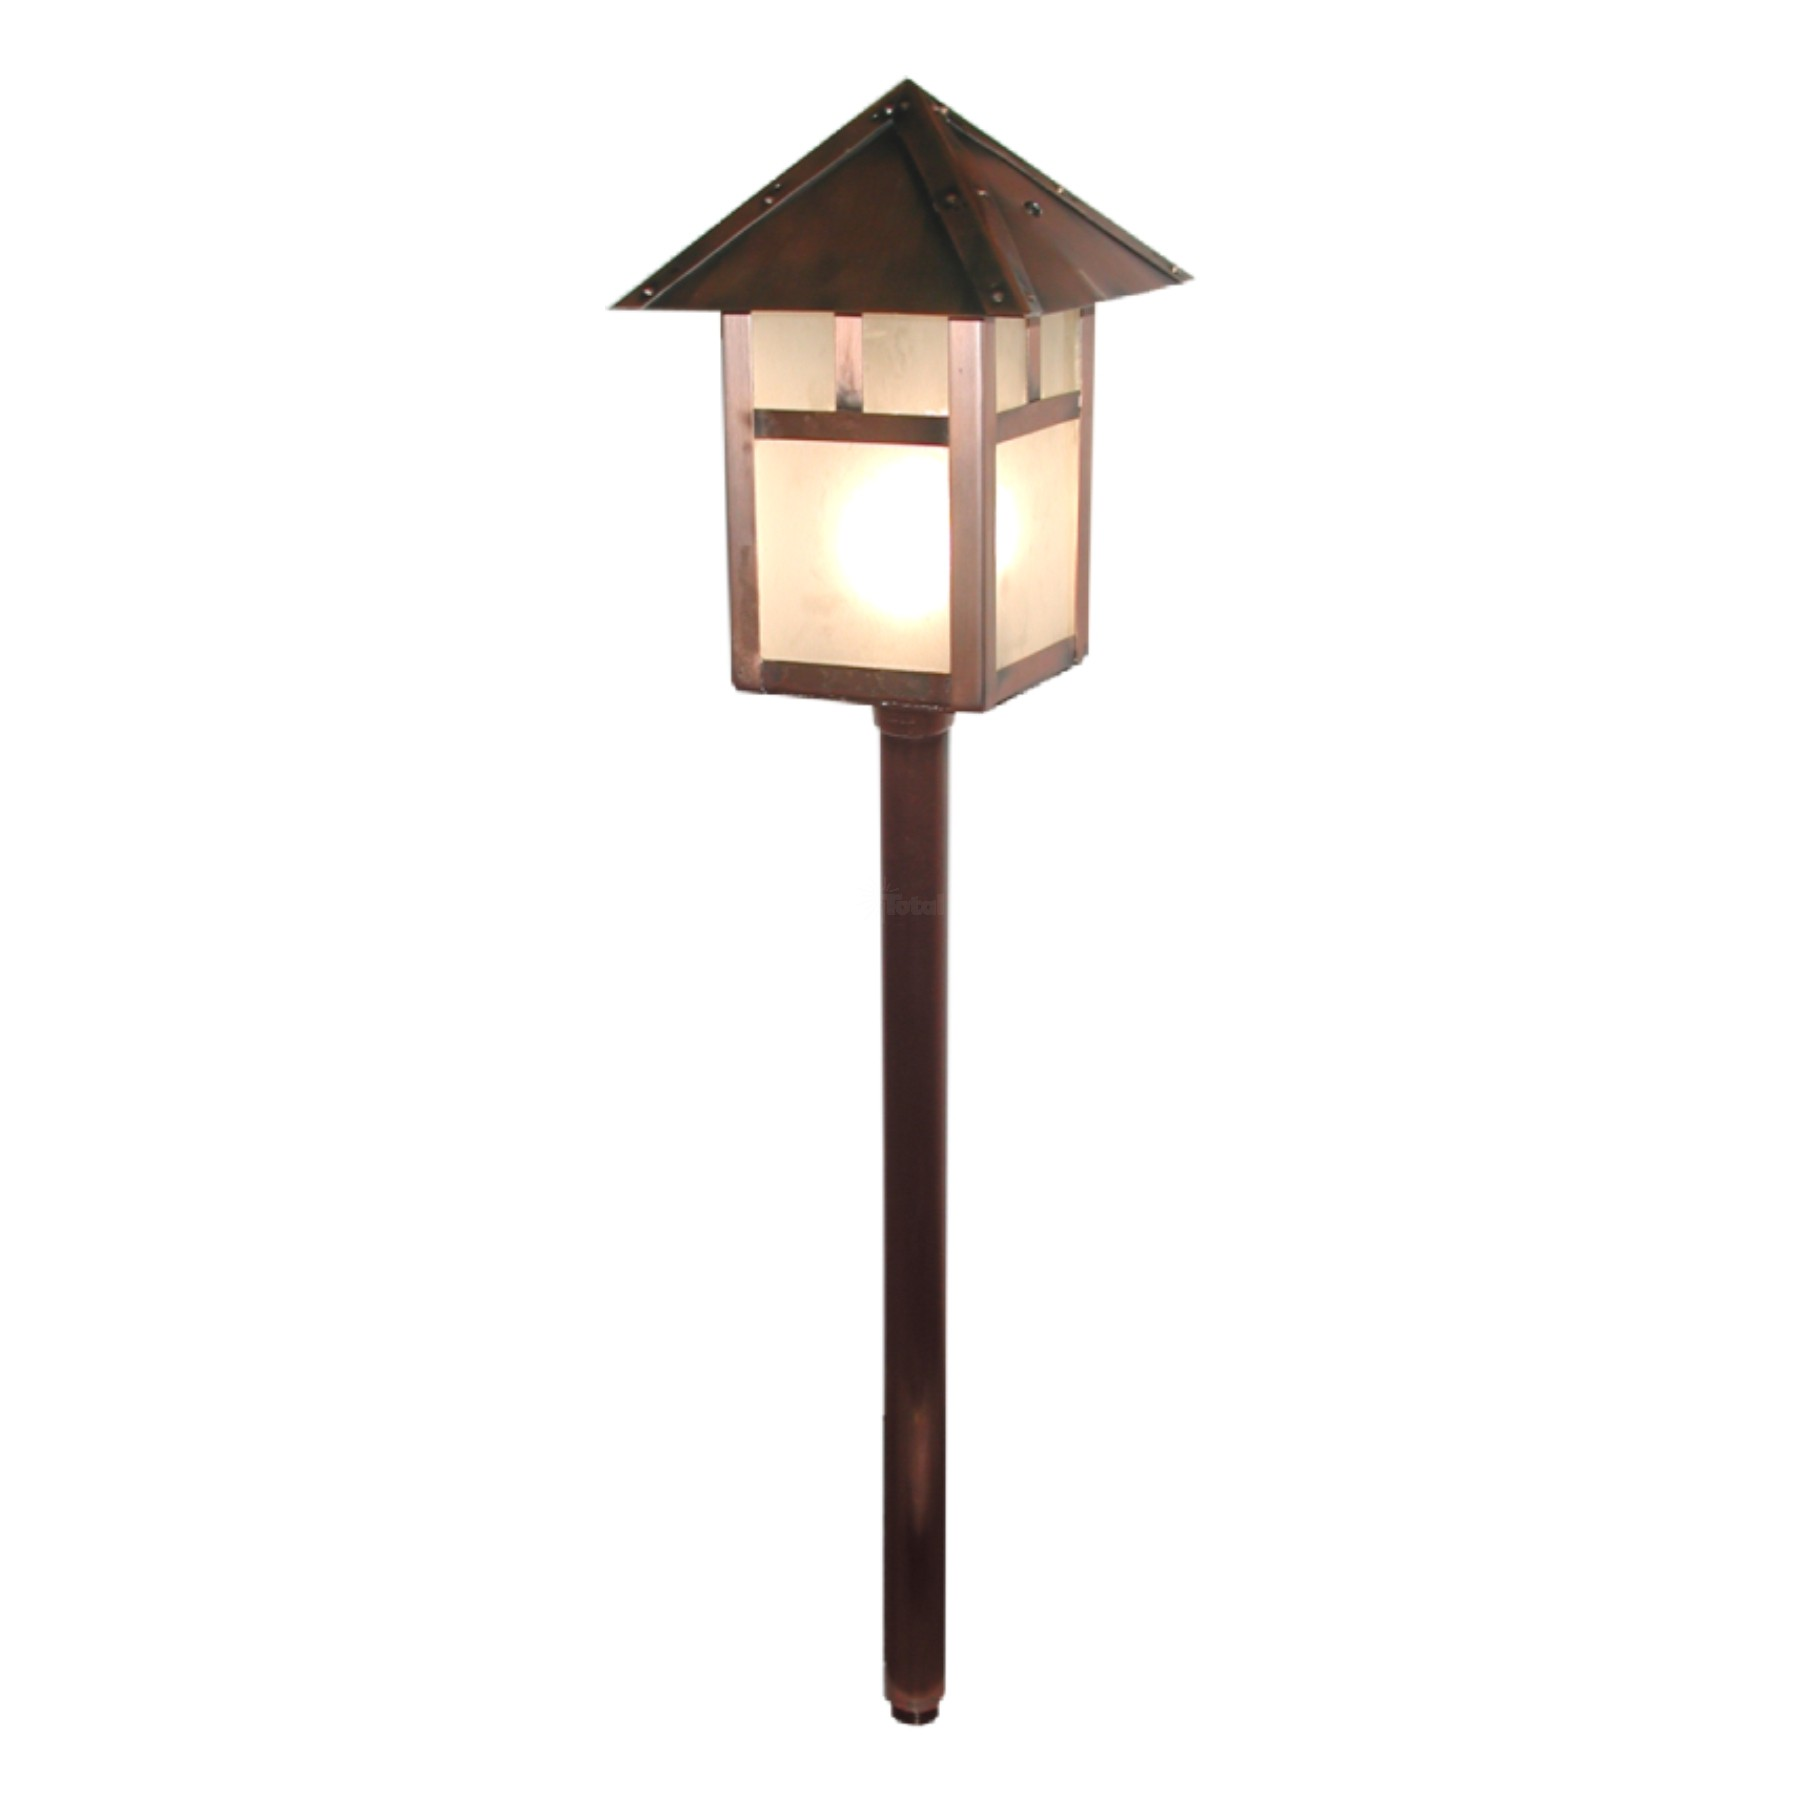 Low Voltage Landscape Lighting Images : Landscape lighting low voltage lantern path light